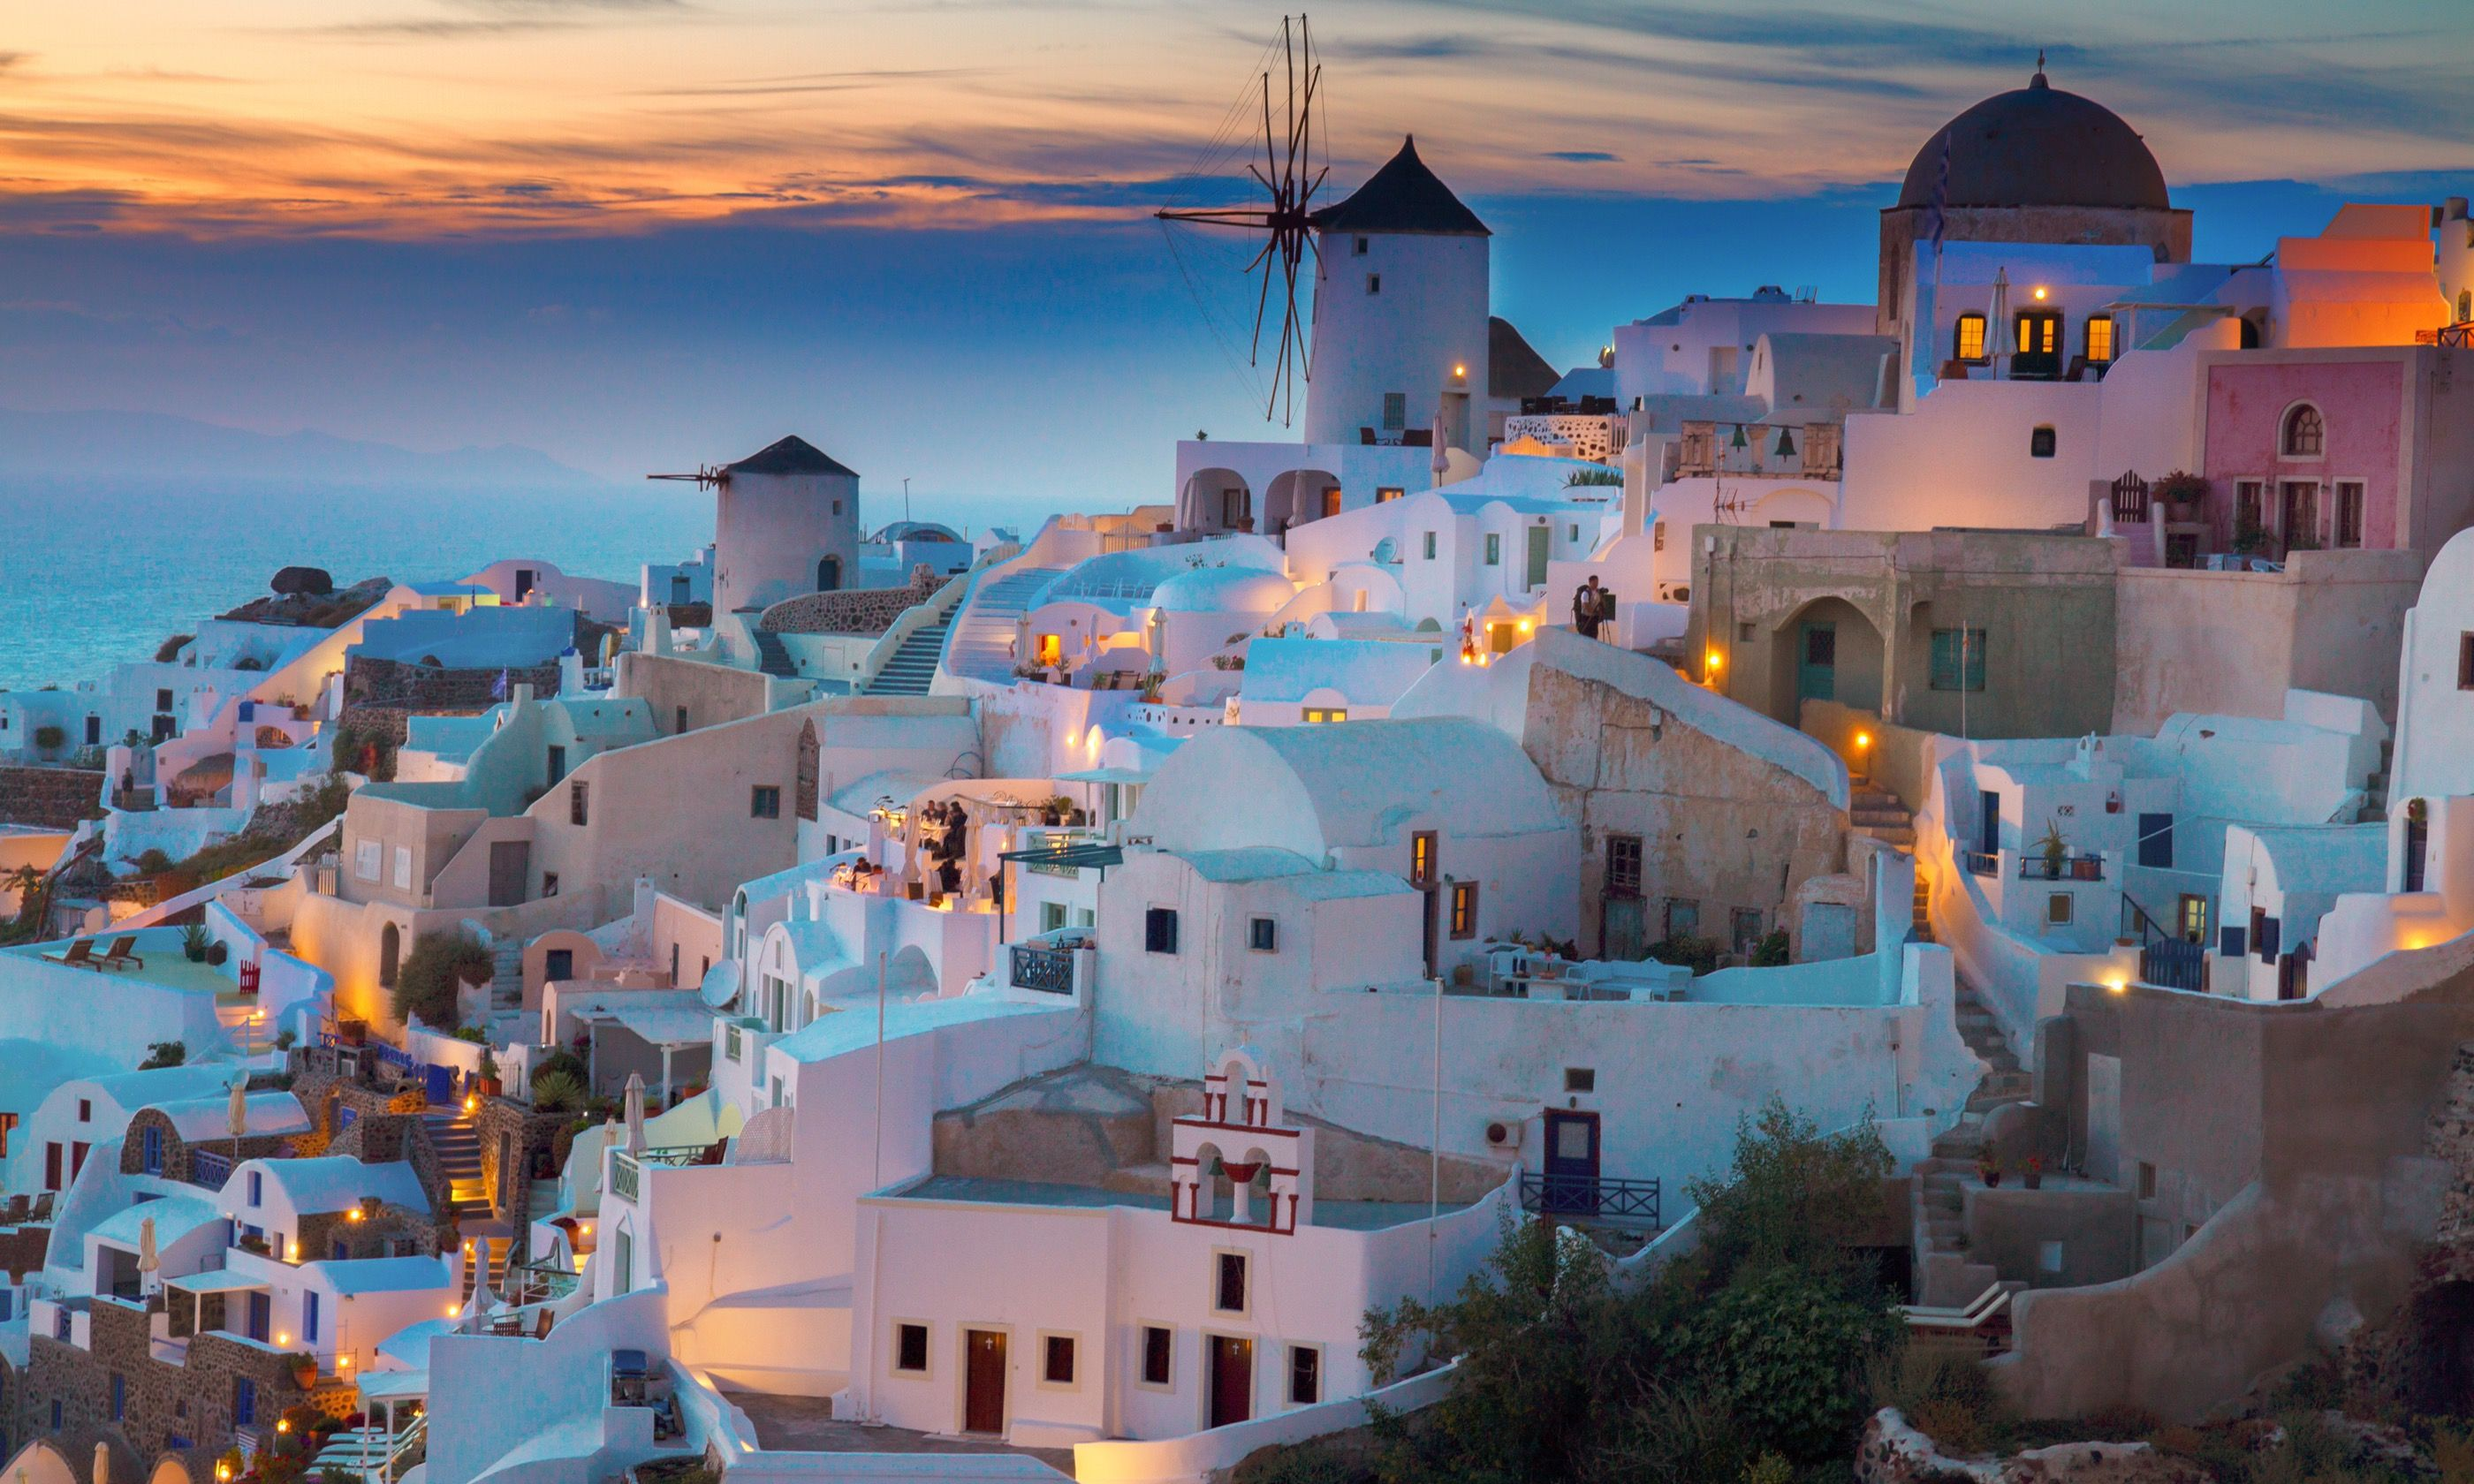 Greek island of Oia at sunset (Shutterstock.com)